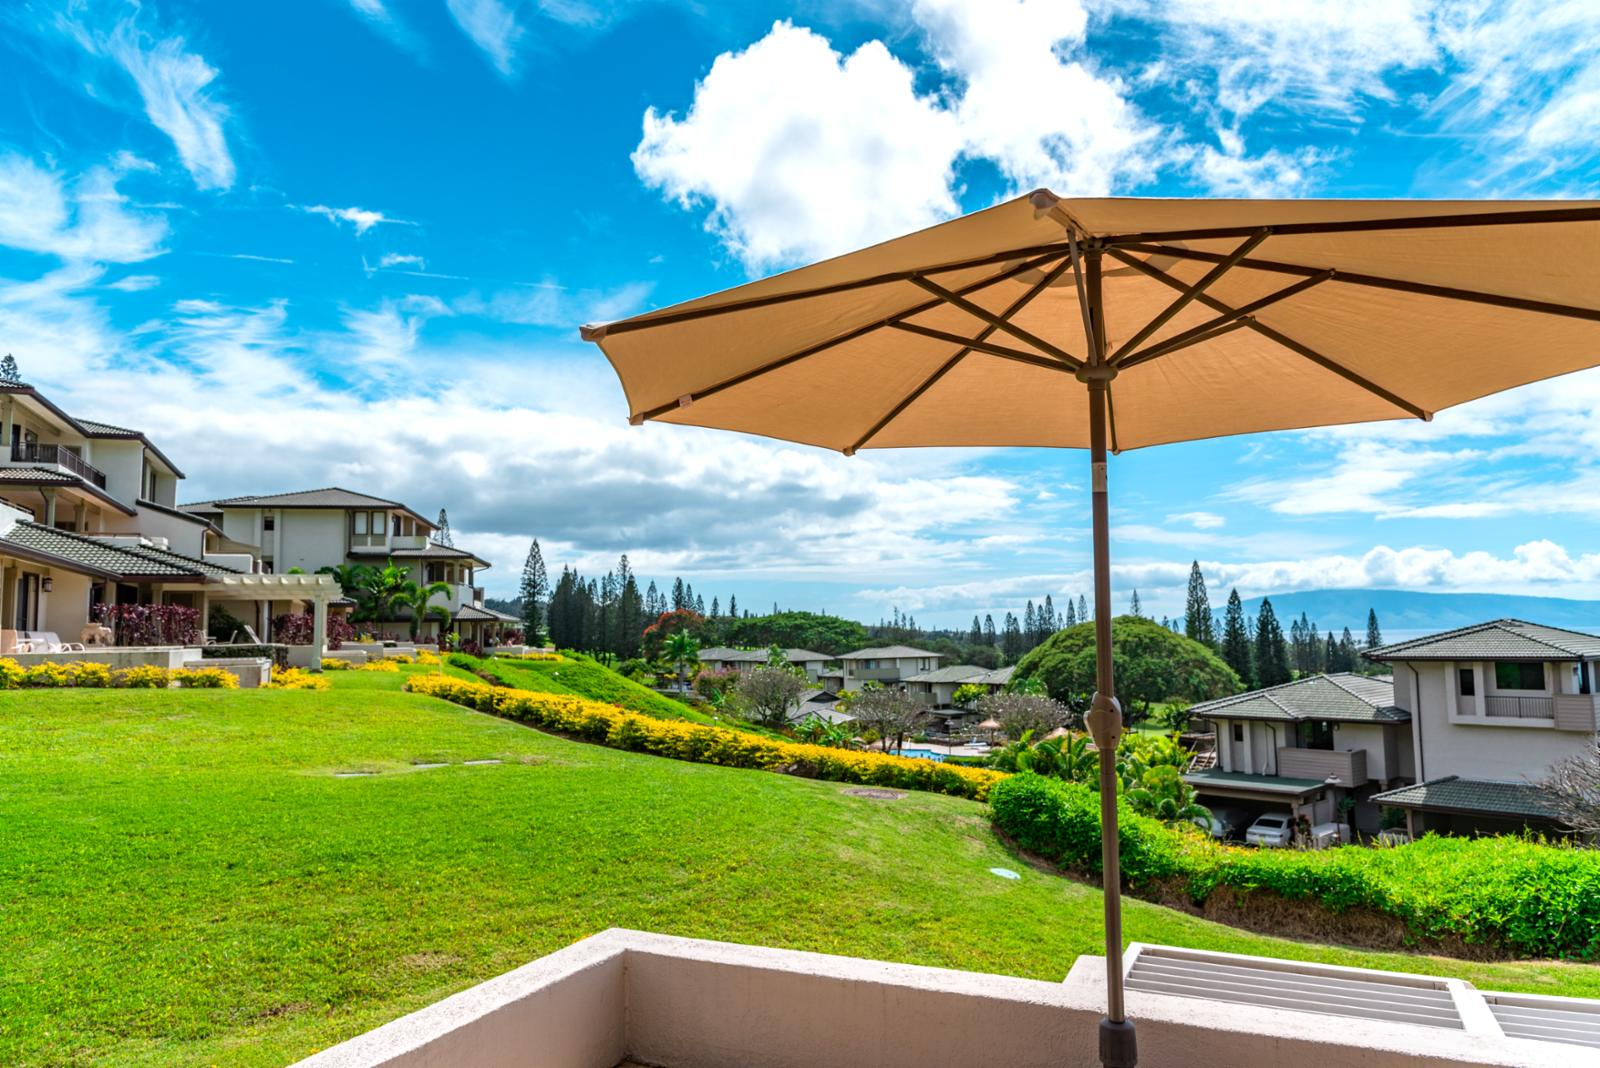 Alluring views of Kapalua